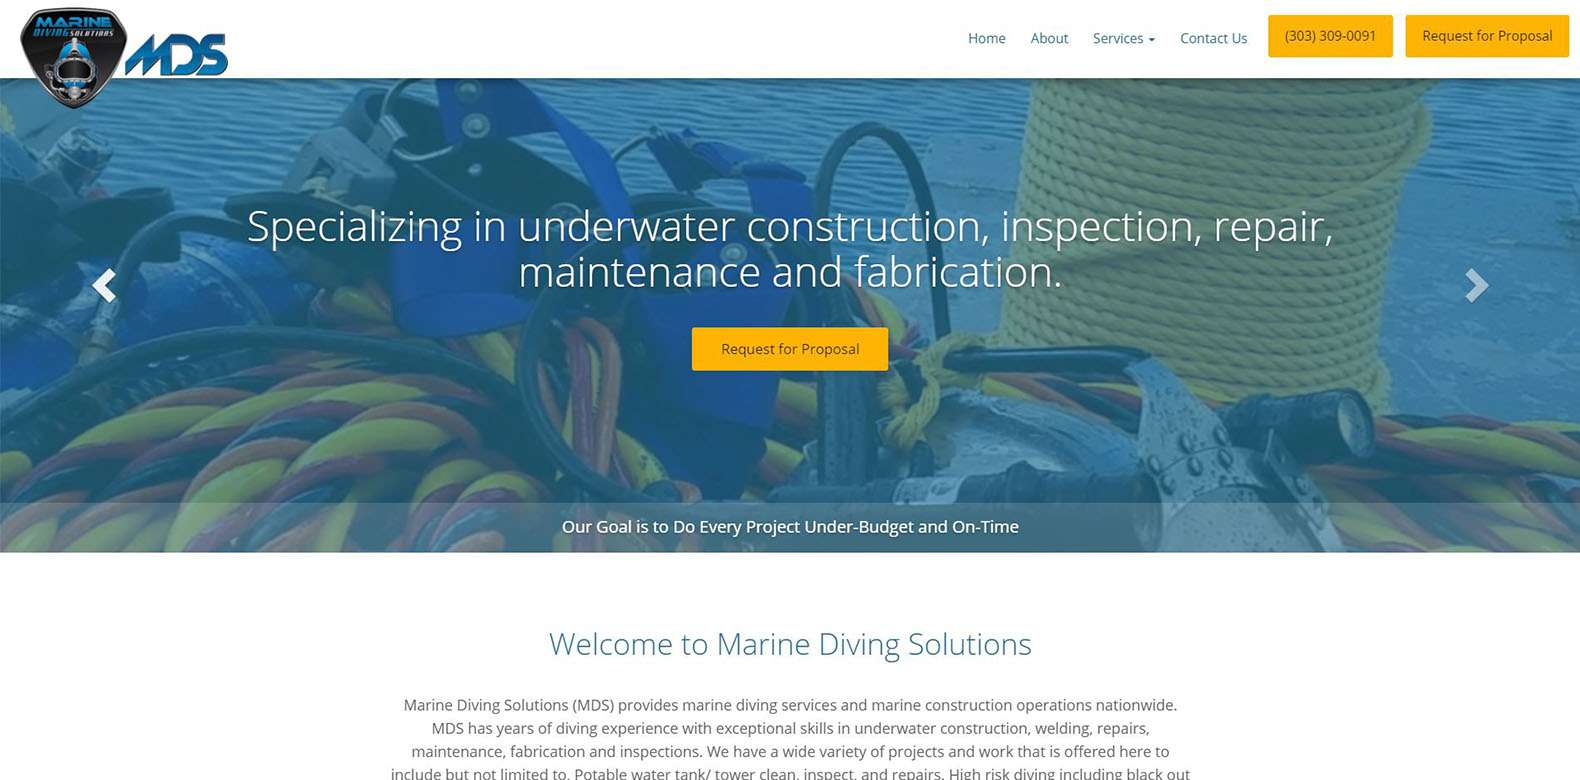 New Website Launch: Marine Diving Solutions